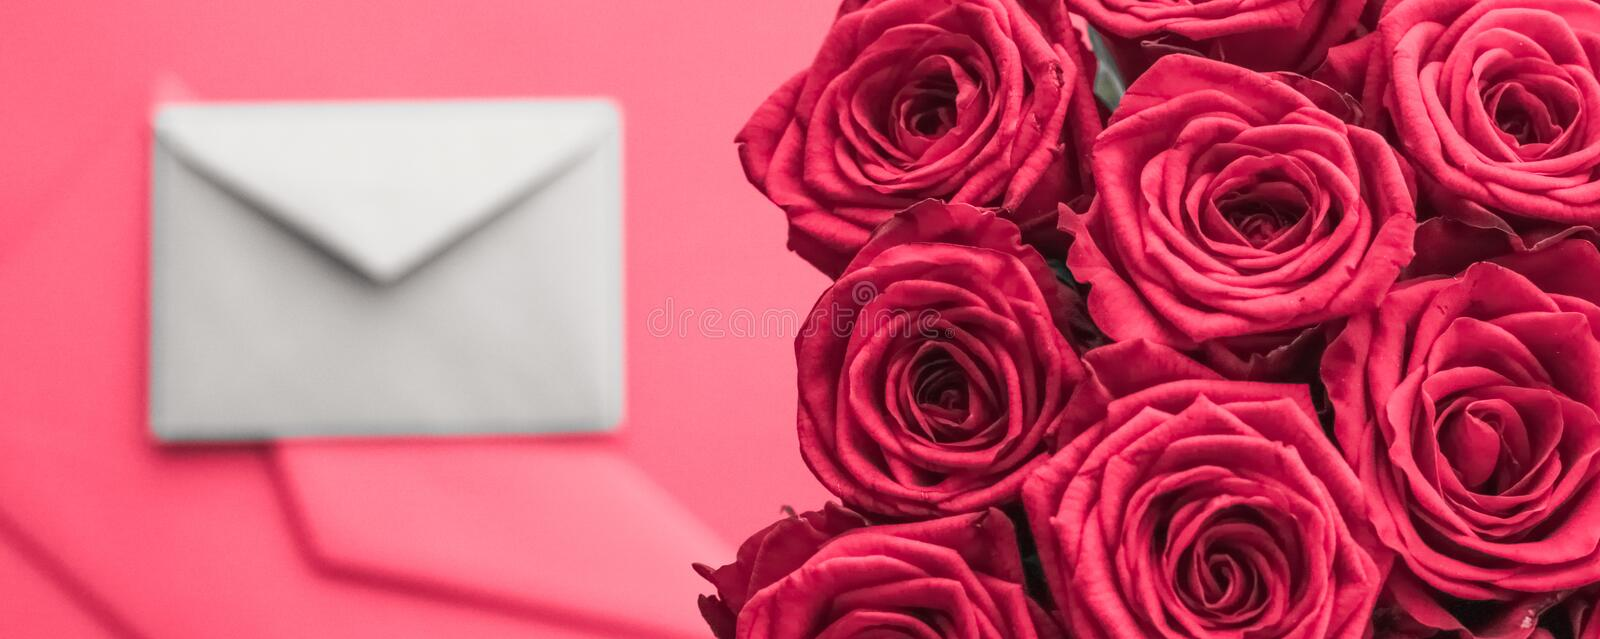 Love letter and flowers delivery on Valentines Day, luxury bouquet of roses and card on pink background for romantic holiday stock photos